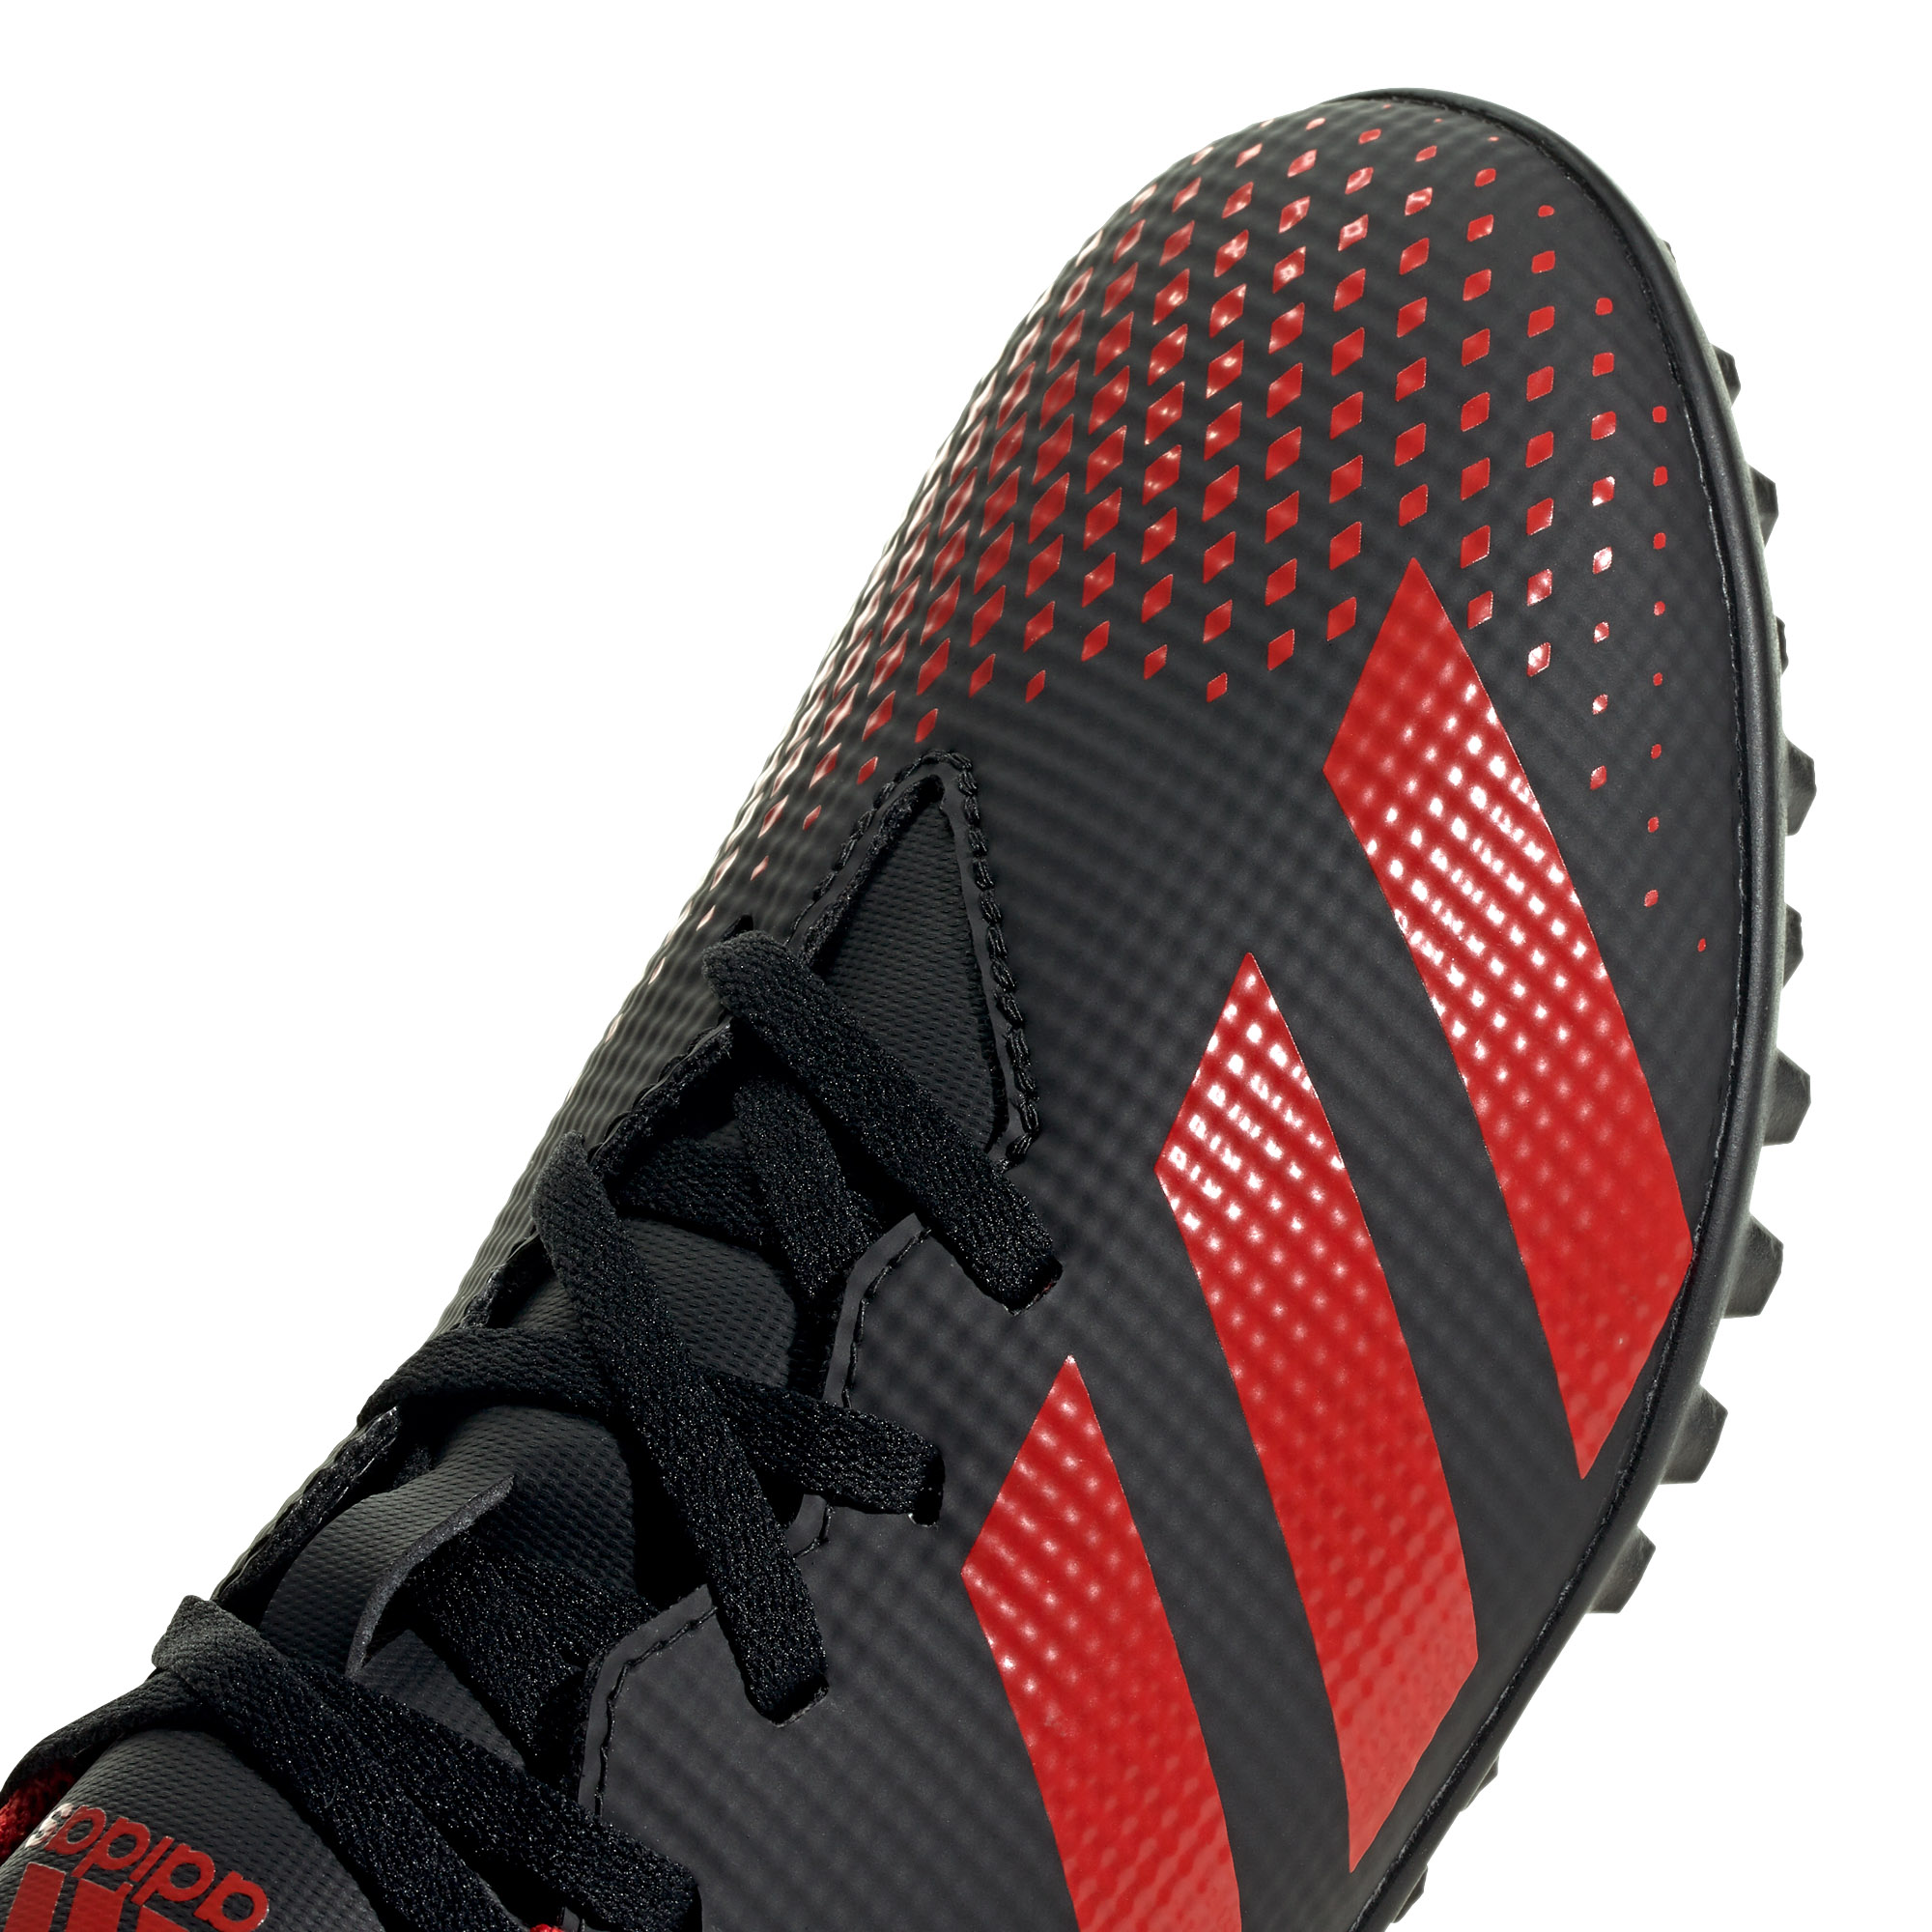 Adidas-Predator-20-4-TF-pour-Homme-Football-Turf-Basket-Chaussure-Noir-Rouge-mutantes miniature 9